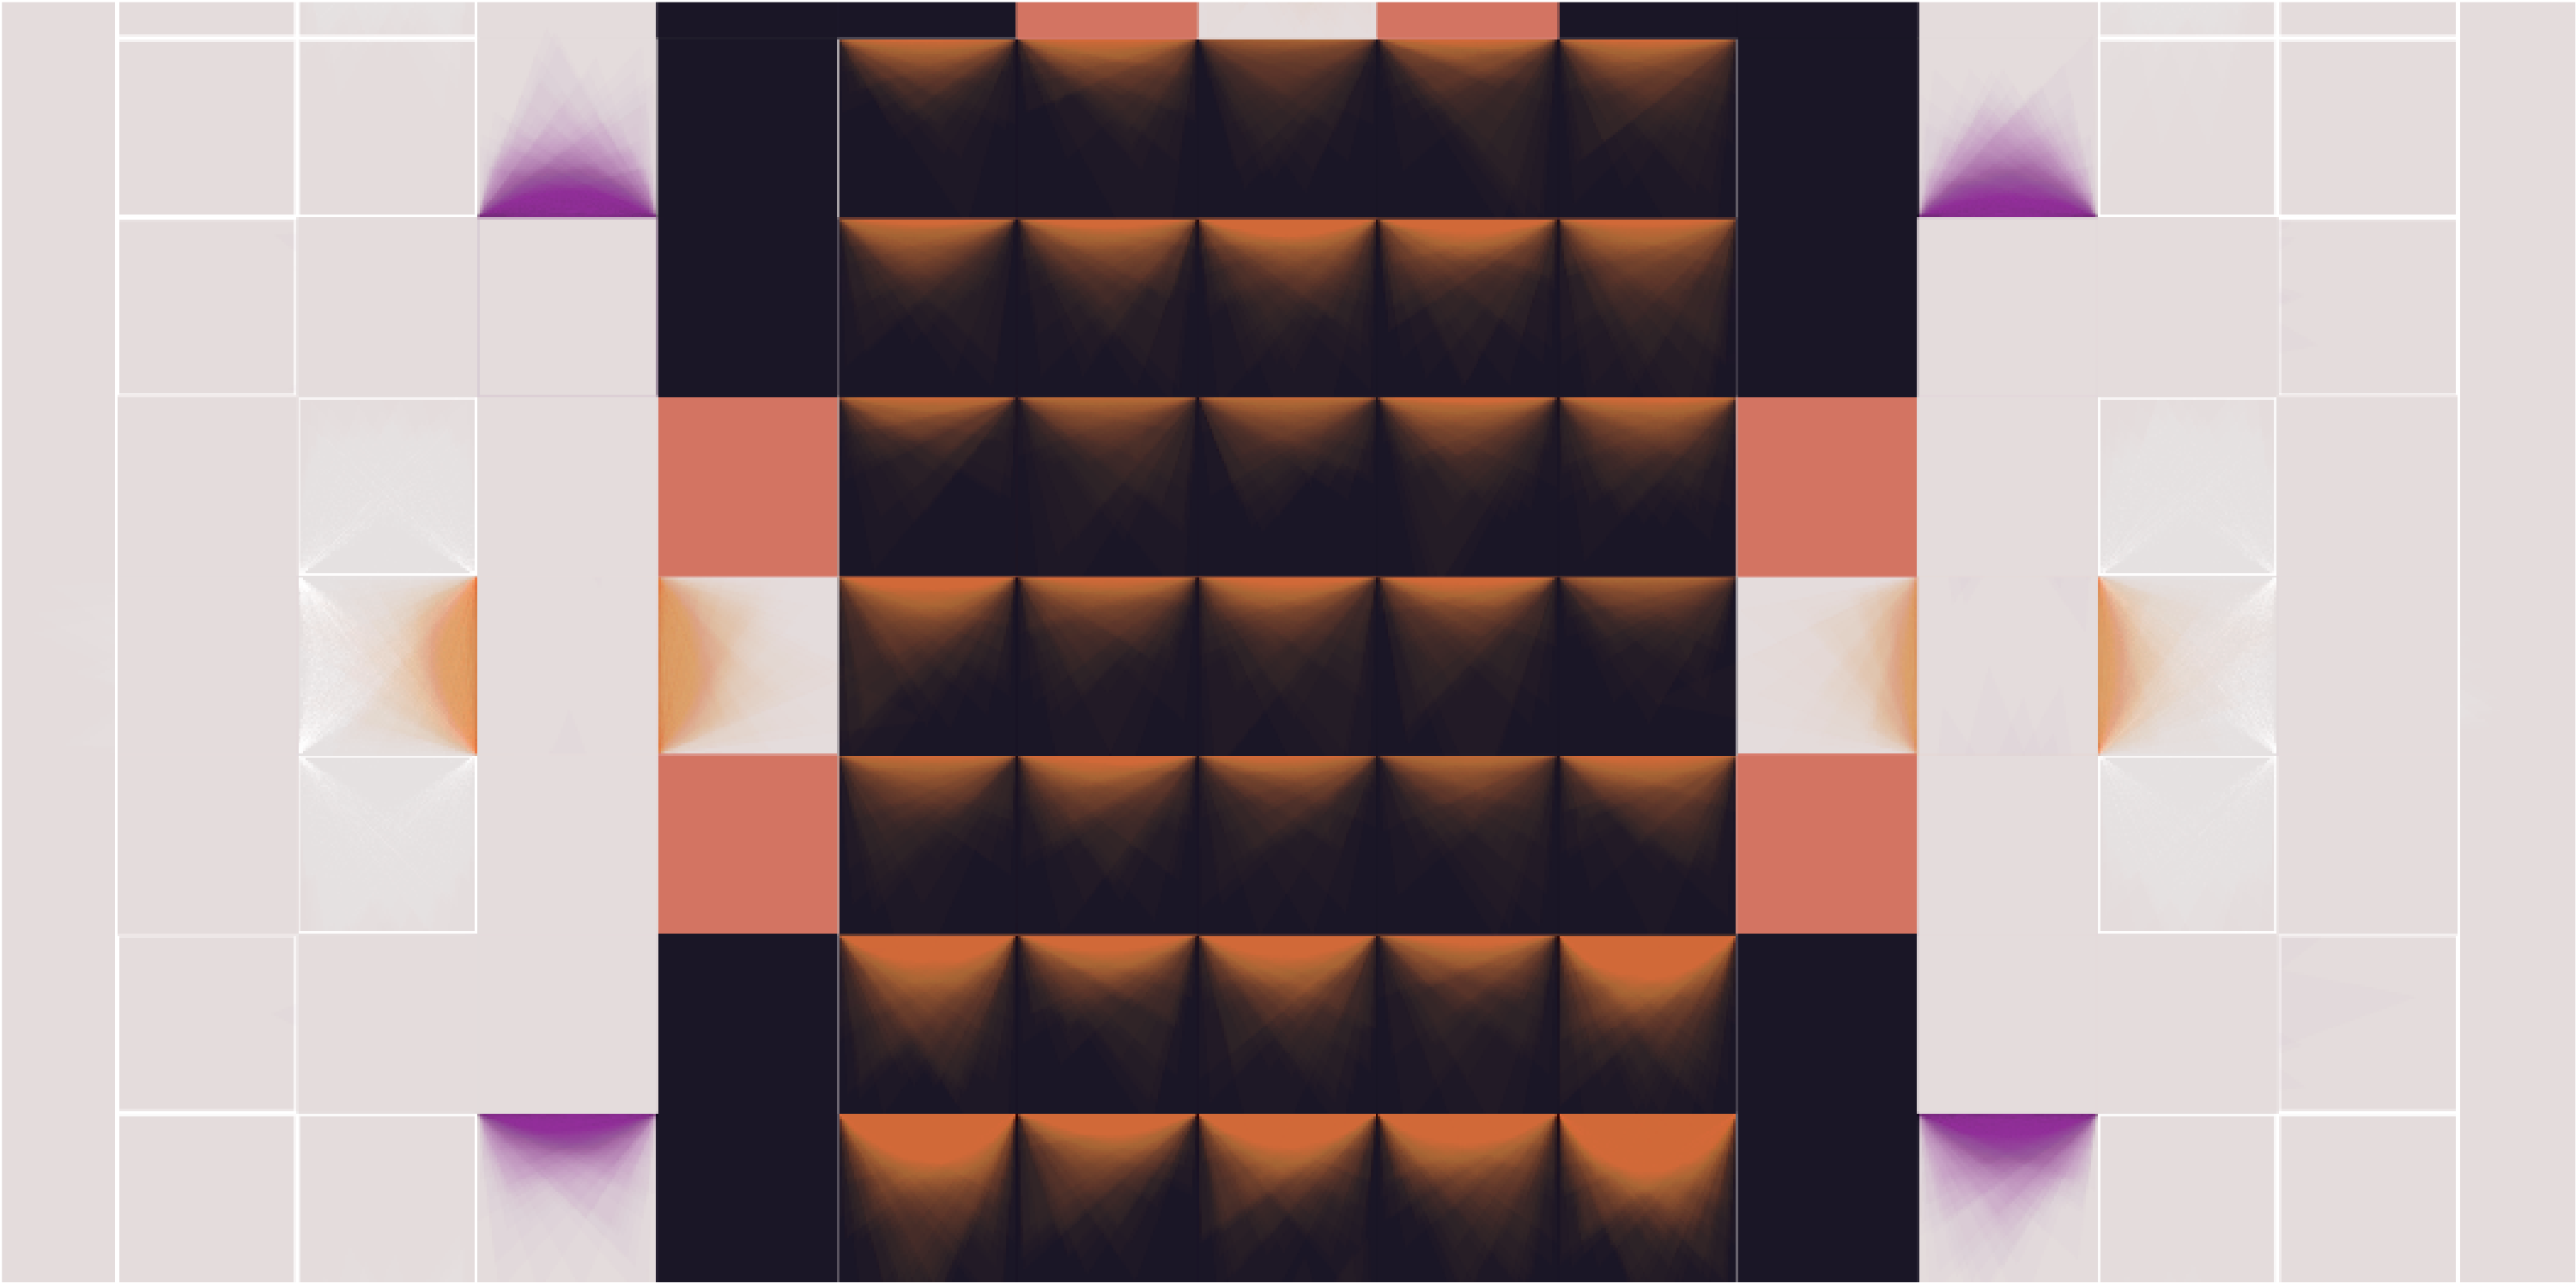 A decorative pixel-based pattern using black, purple, and orange on a beige background. Some of the pixels have gradients to imitate paint spreading.